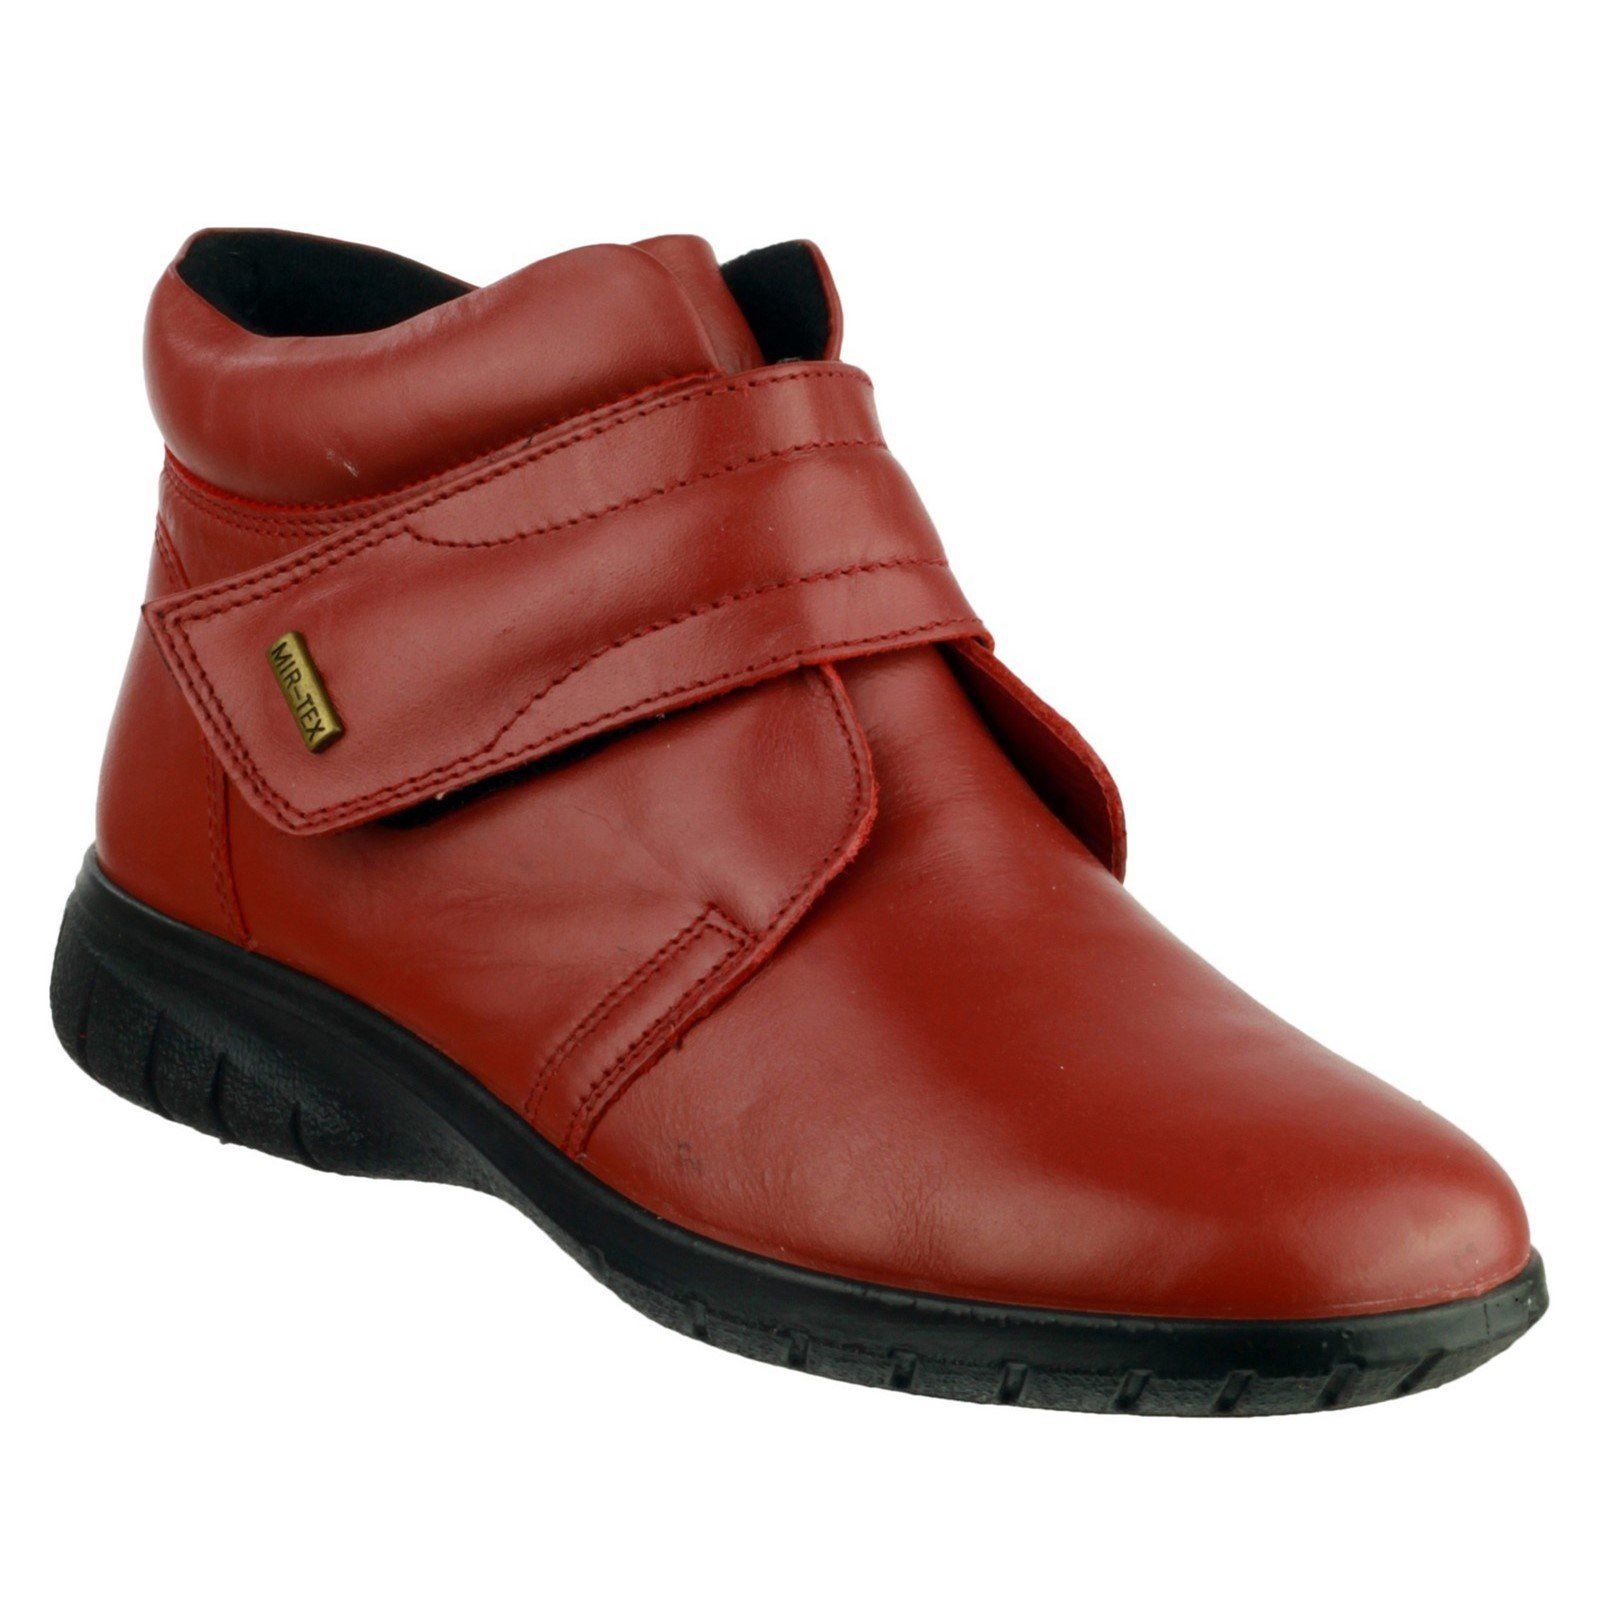 Cotswold Women's Chalford 2 Ankle Boot Various Colours 32977 - Red 4